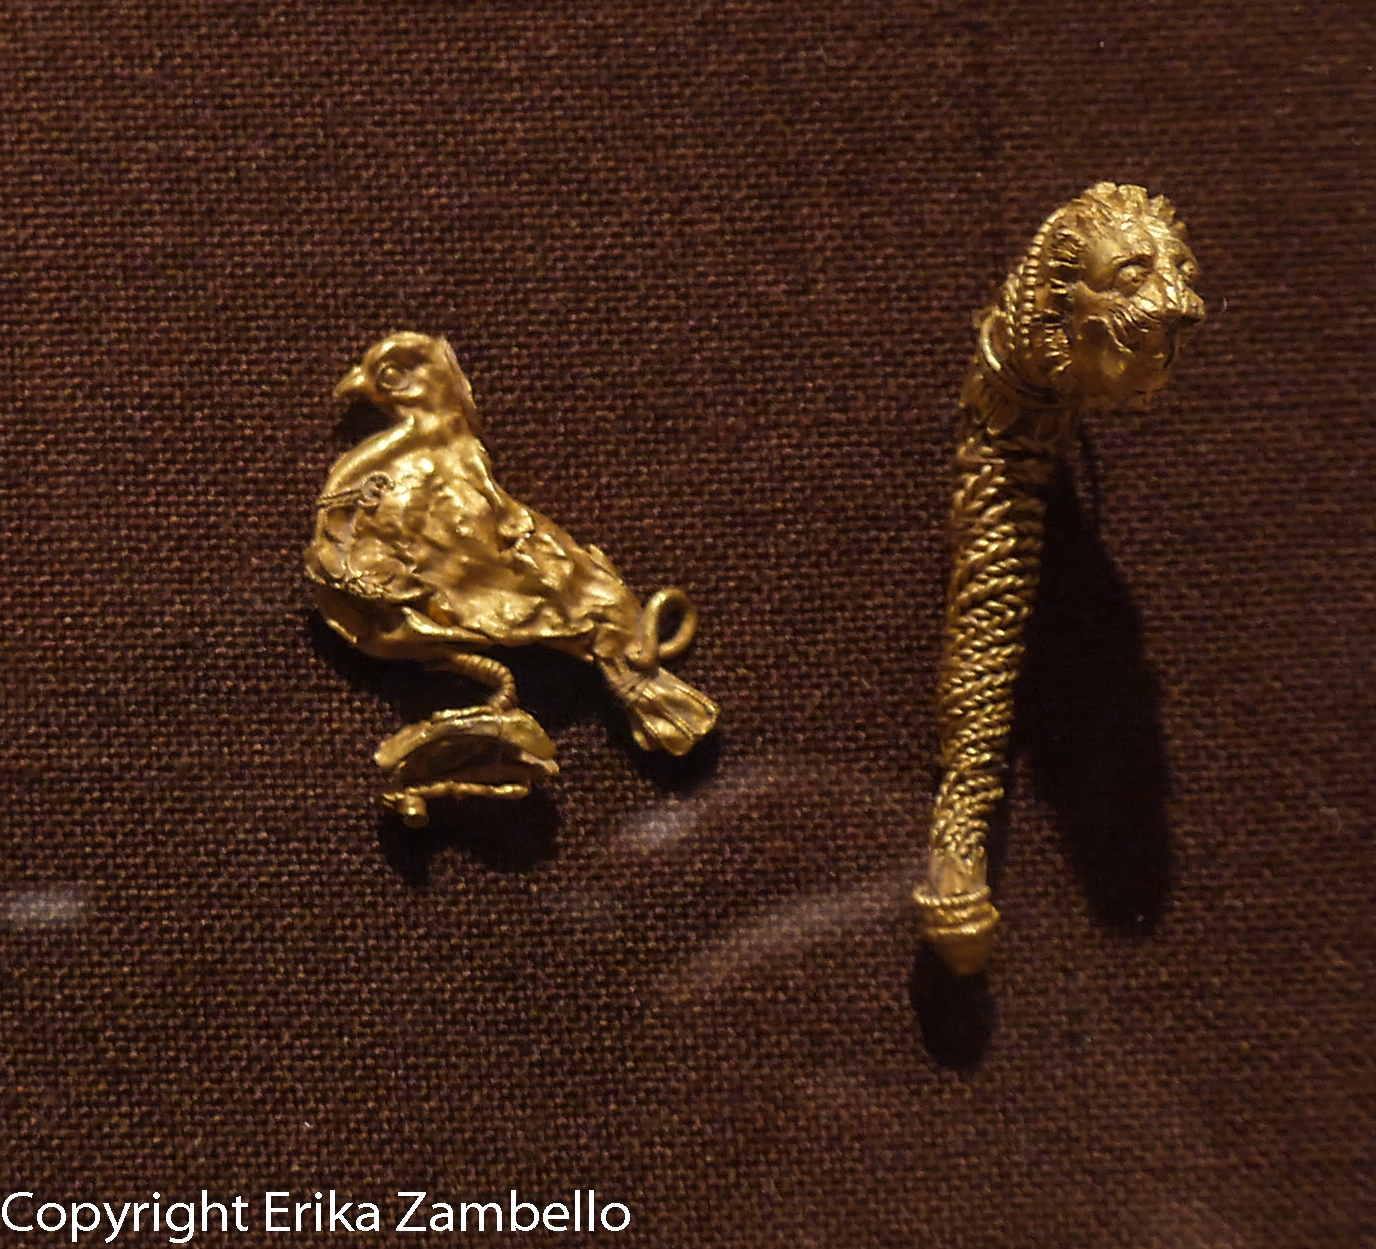 bird, gold, ancient, artifact, bird